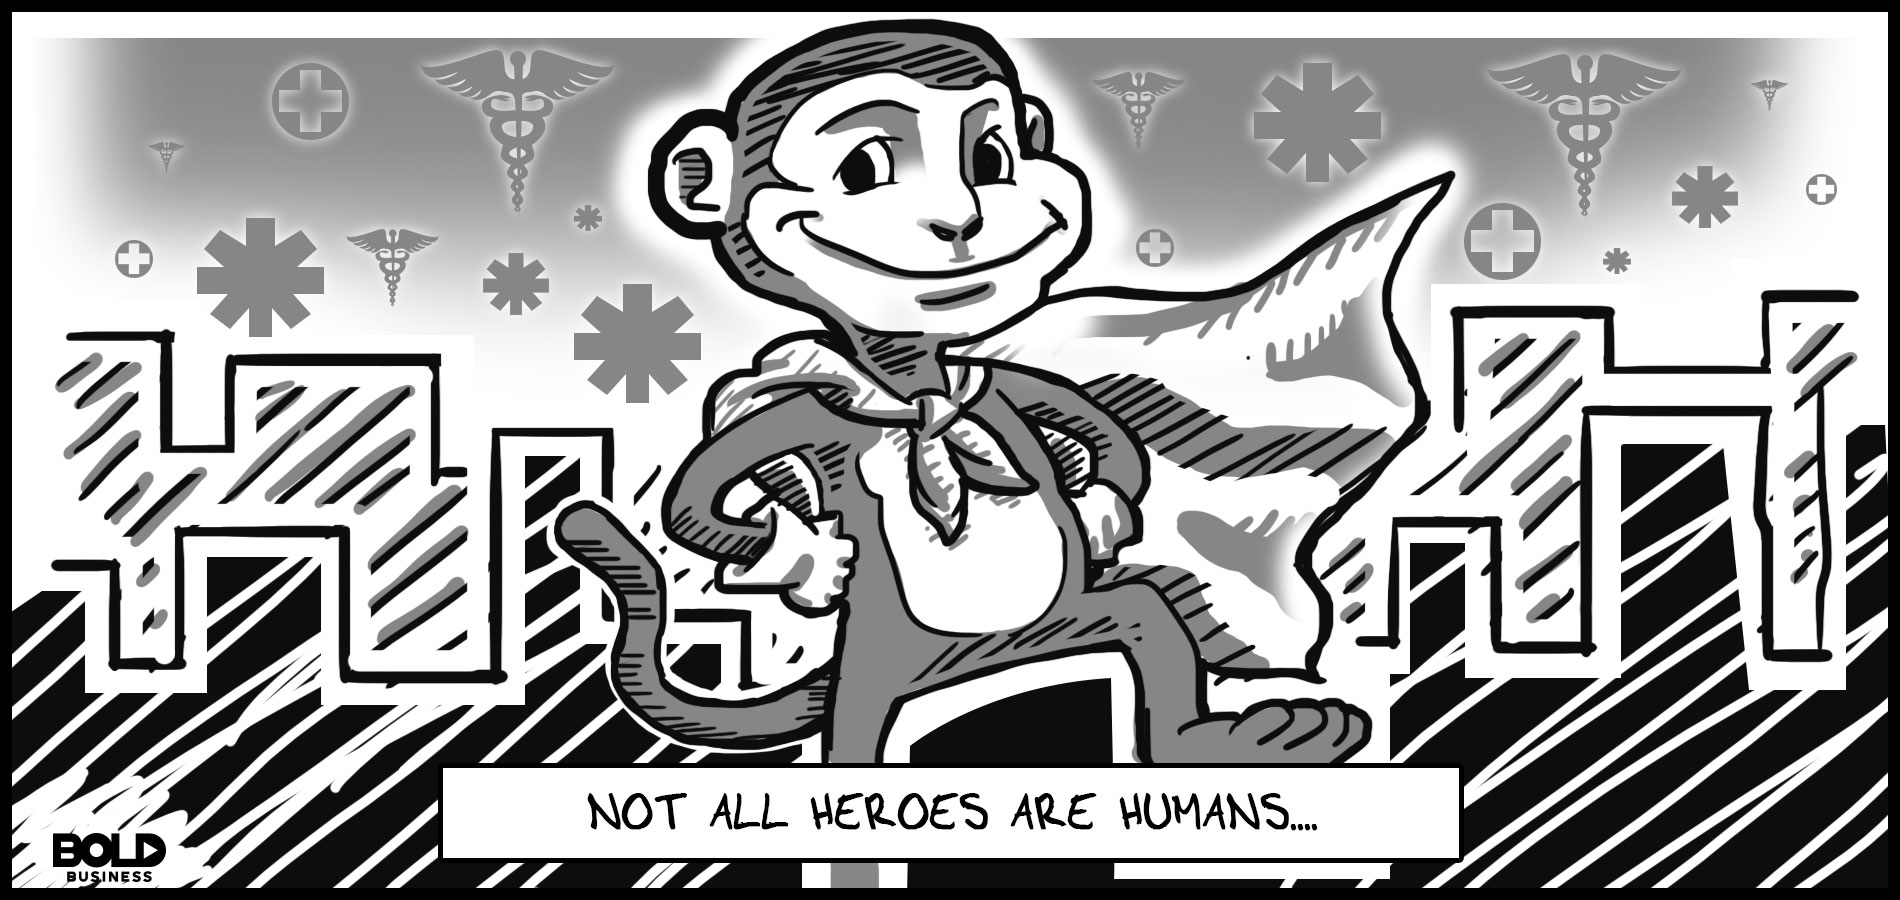 a monochrome cartoon of a rhesus monkey wearing a cape posing as a superhero